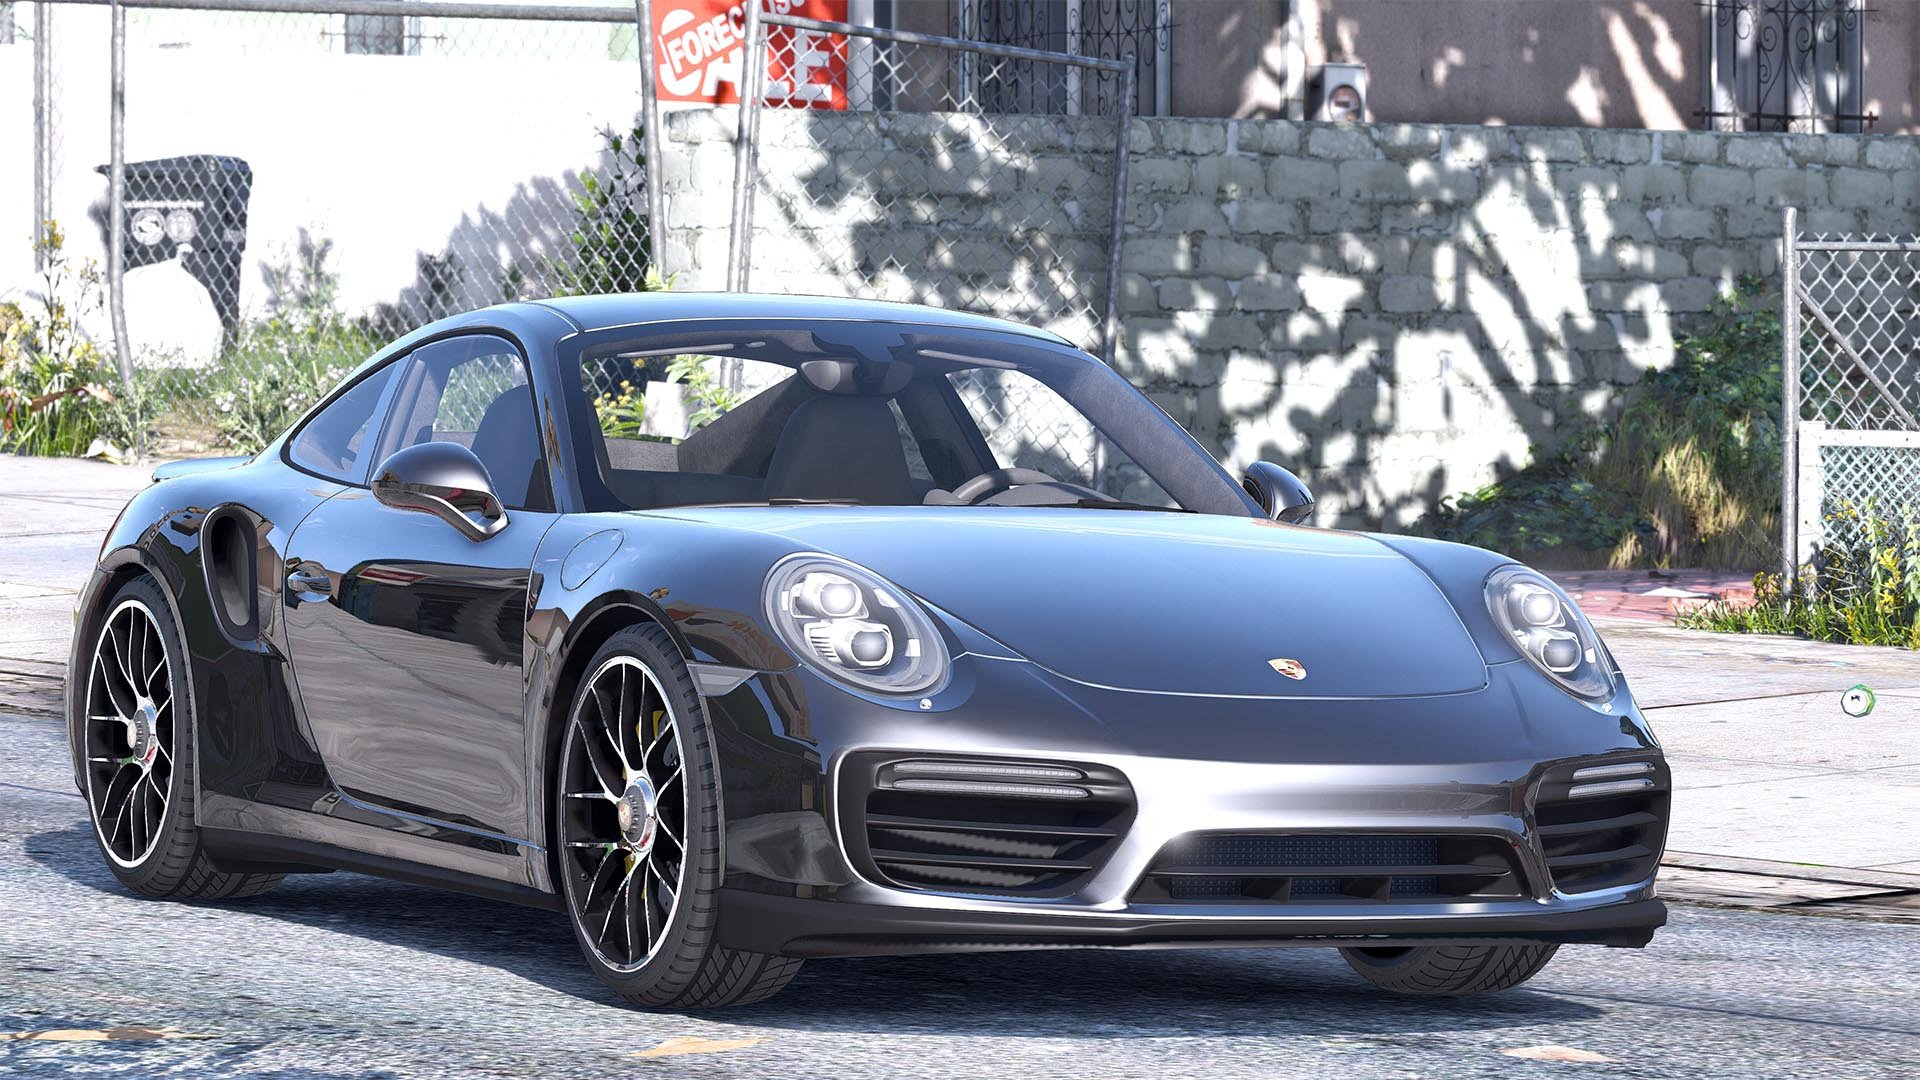 2016 porsche 911 turbo s add on replace auto spoiler animated template gta5. Black Bedroom Furniture Sets. Home Design Ideas